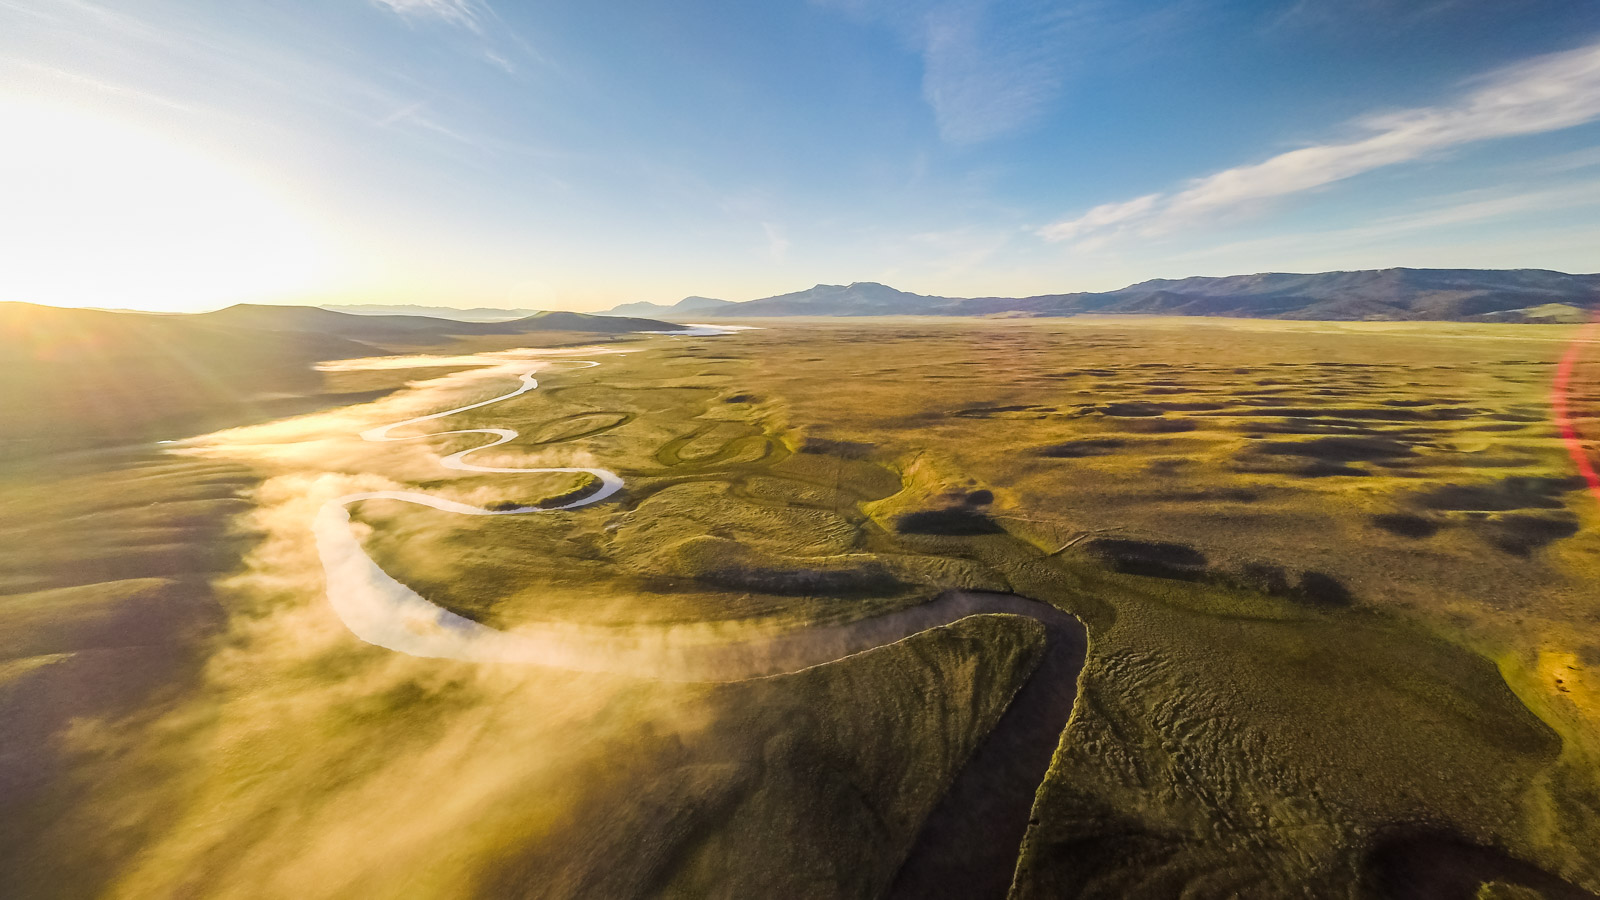 montana, usa, travel, wanderlust, horses, cattle, centennial valley, yellowstone, j bar l ranch, cowboy, bigskycountry, outwest, anhede, gopro, dji, dji phantom, drone, aerial, aerial video, aerial film, quadcopter